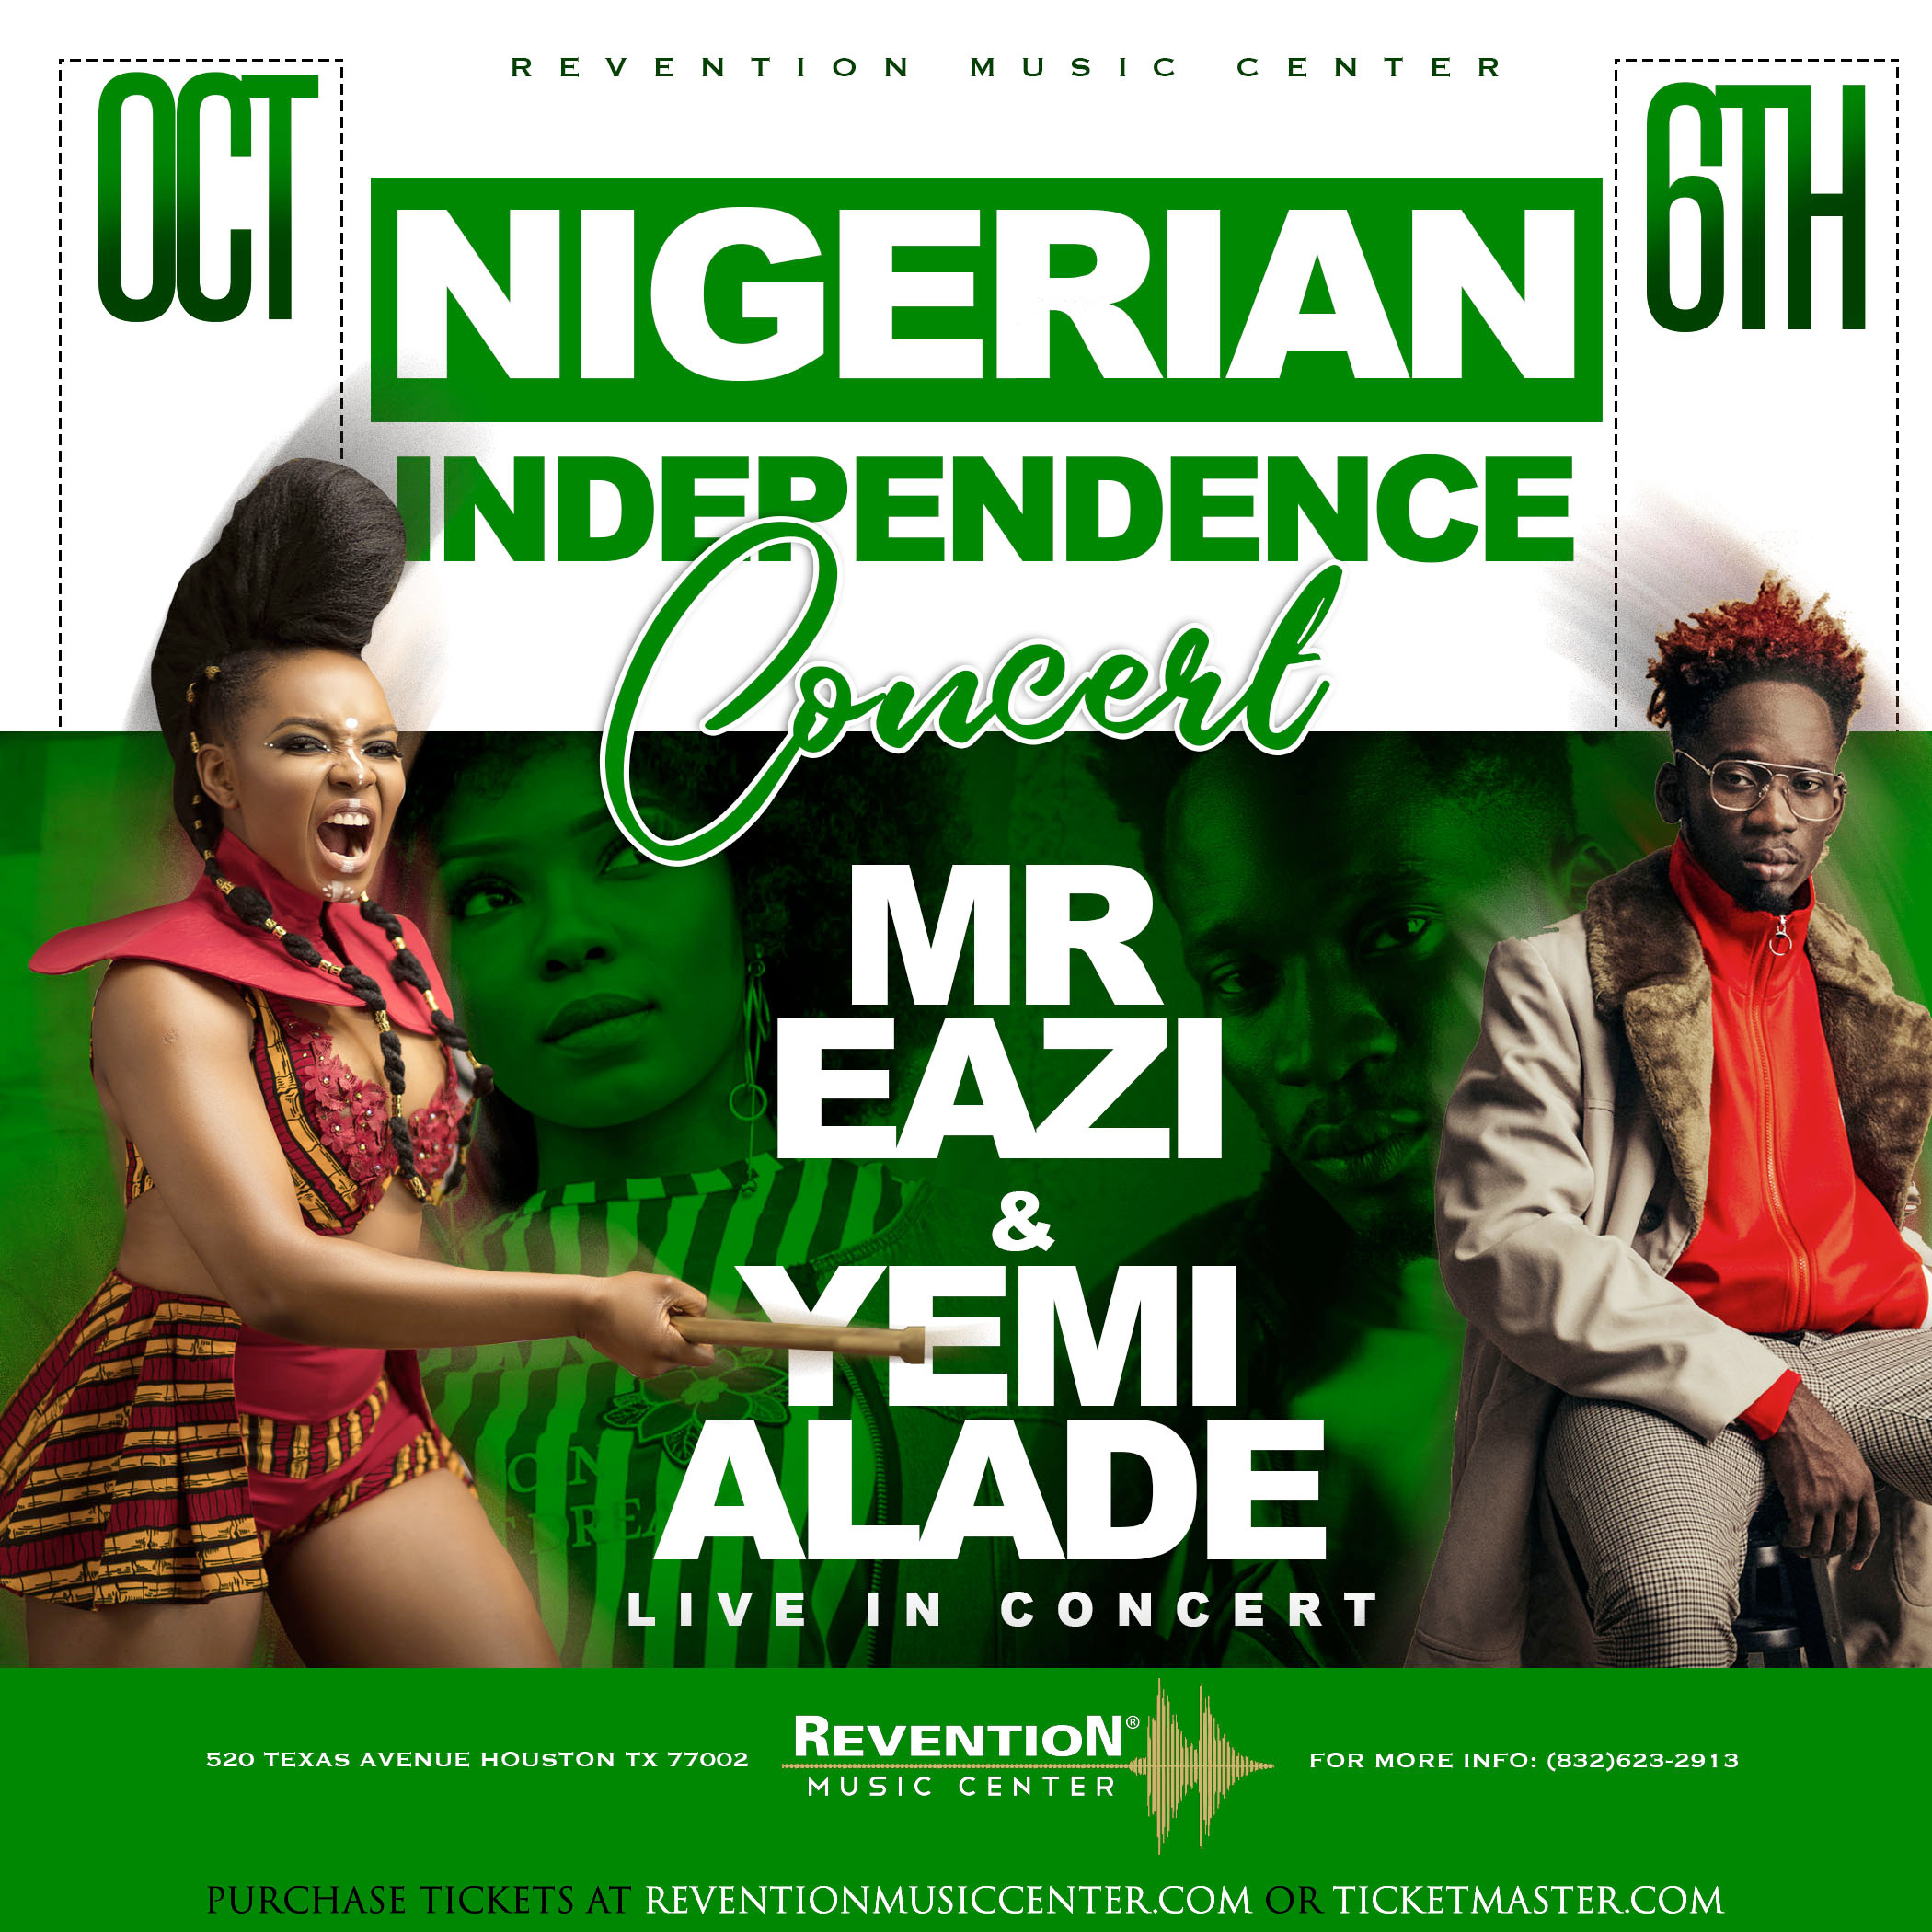 NIGERIAN INDEPENDENCE CONCERT OCTOBER 4 Houston Flyer